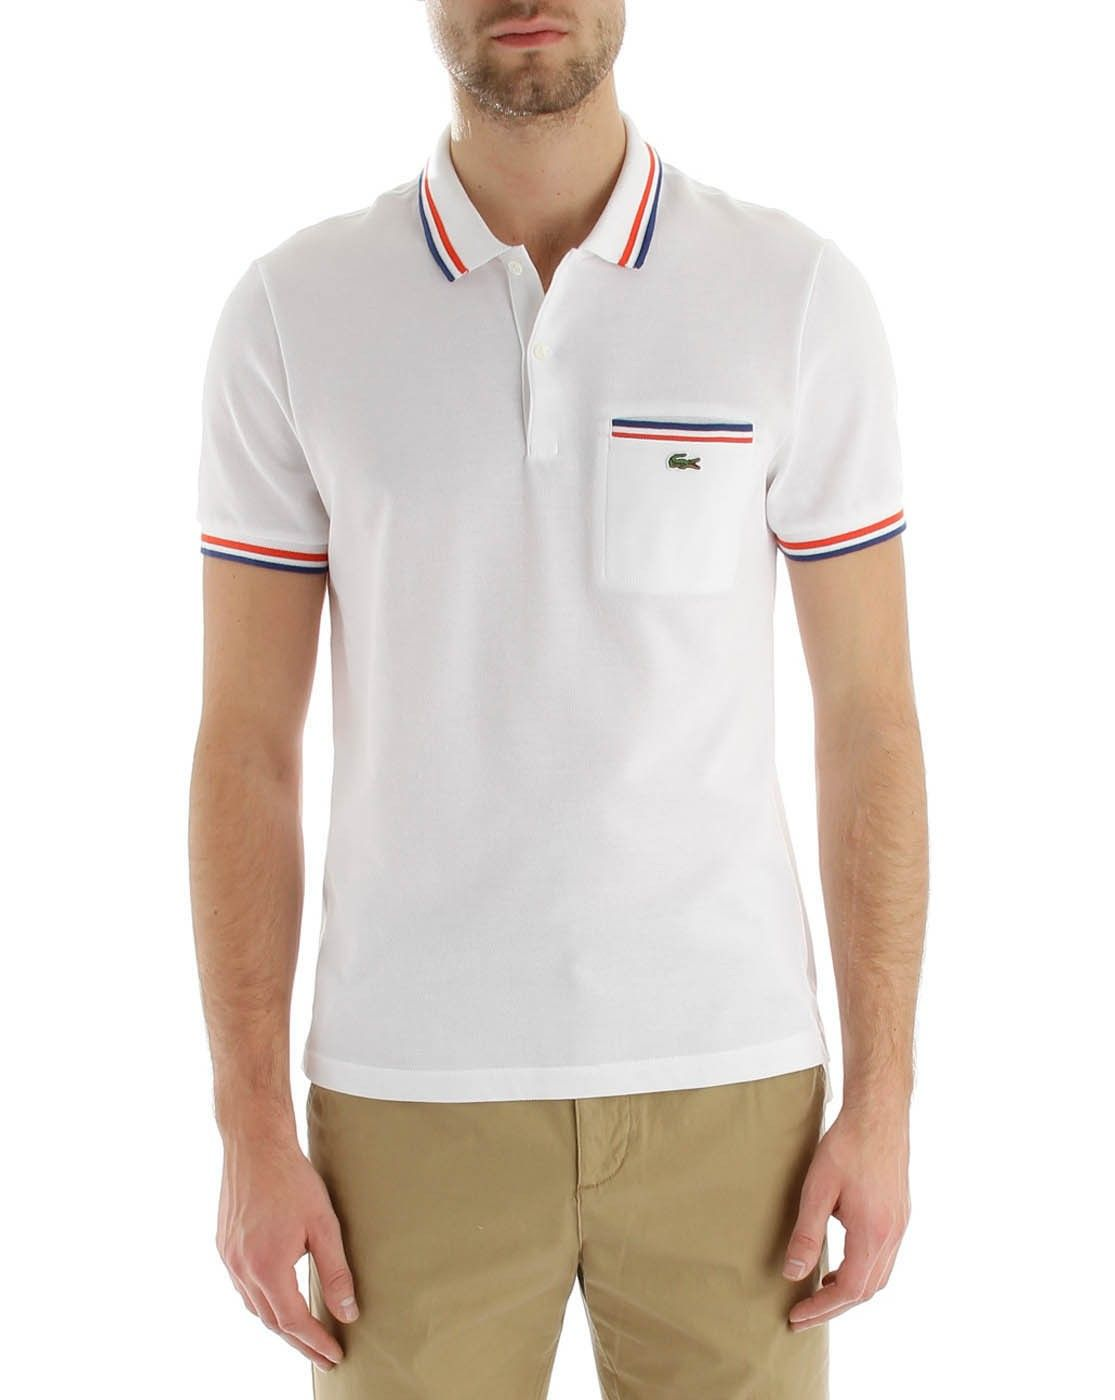 Buy In The Usa And Uk Ship Globally With Borderlinx Lacoste Shirt Designs Shirts